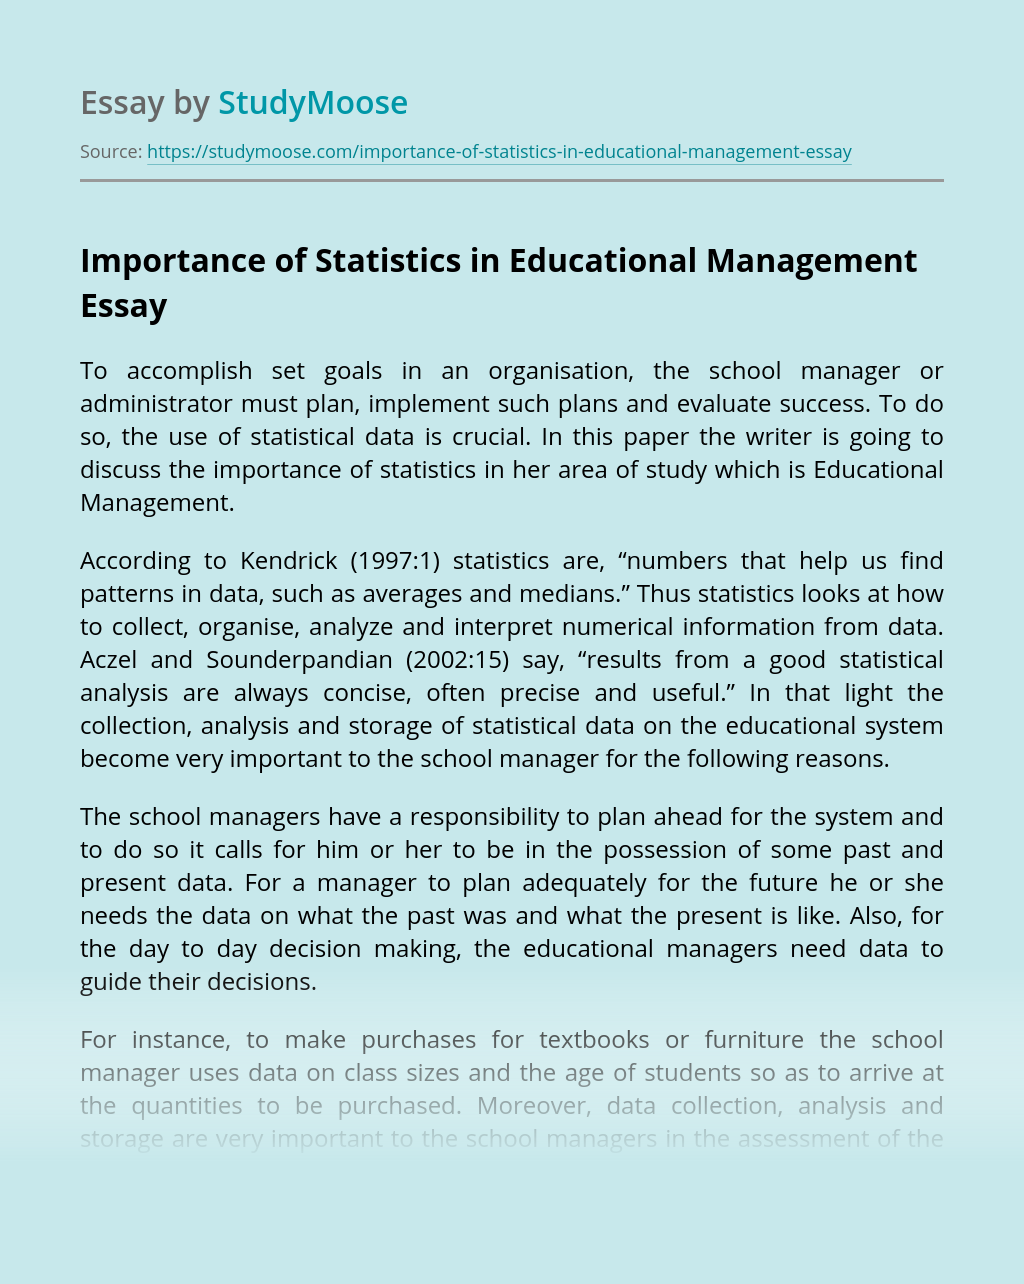 Importance of Statistics in Educational Management